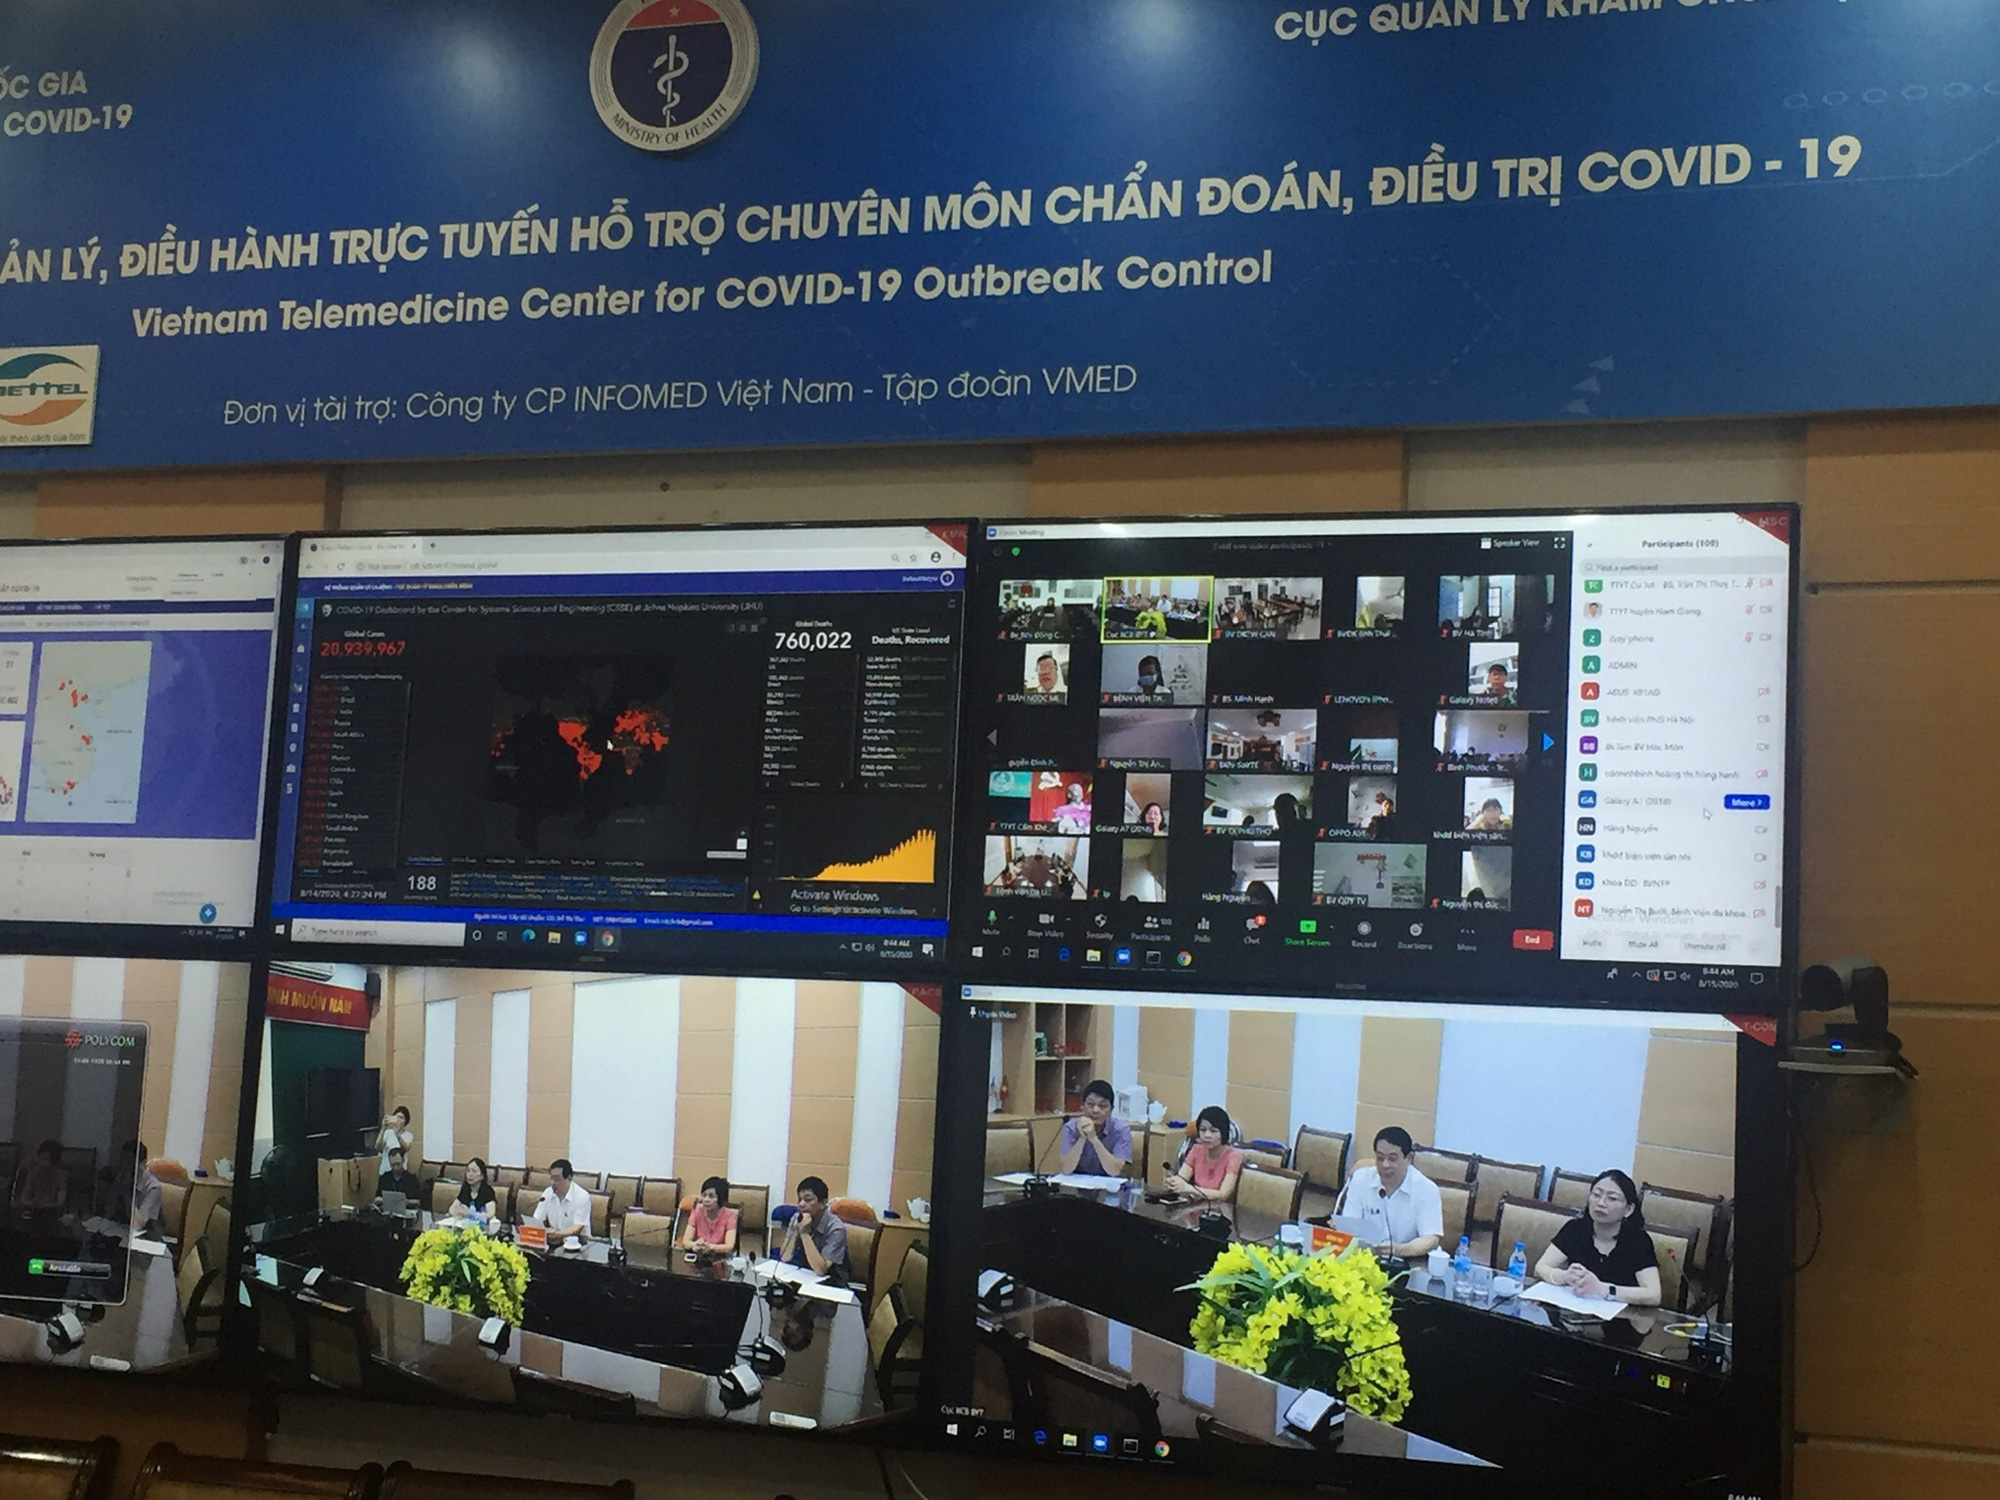 Vietnam documents one imported COVID-19 case, one virus-related fatality